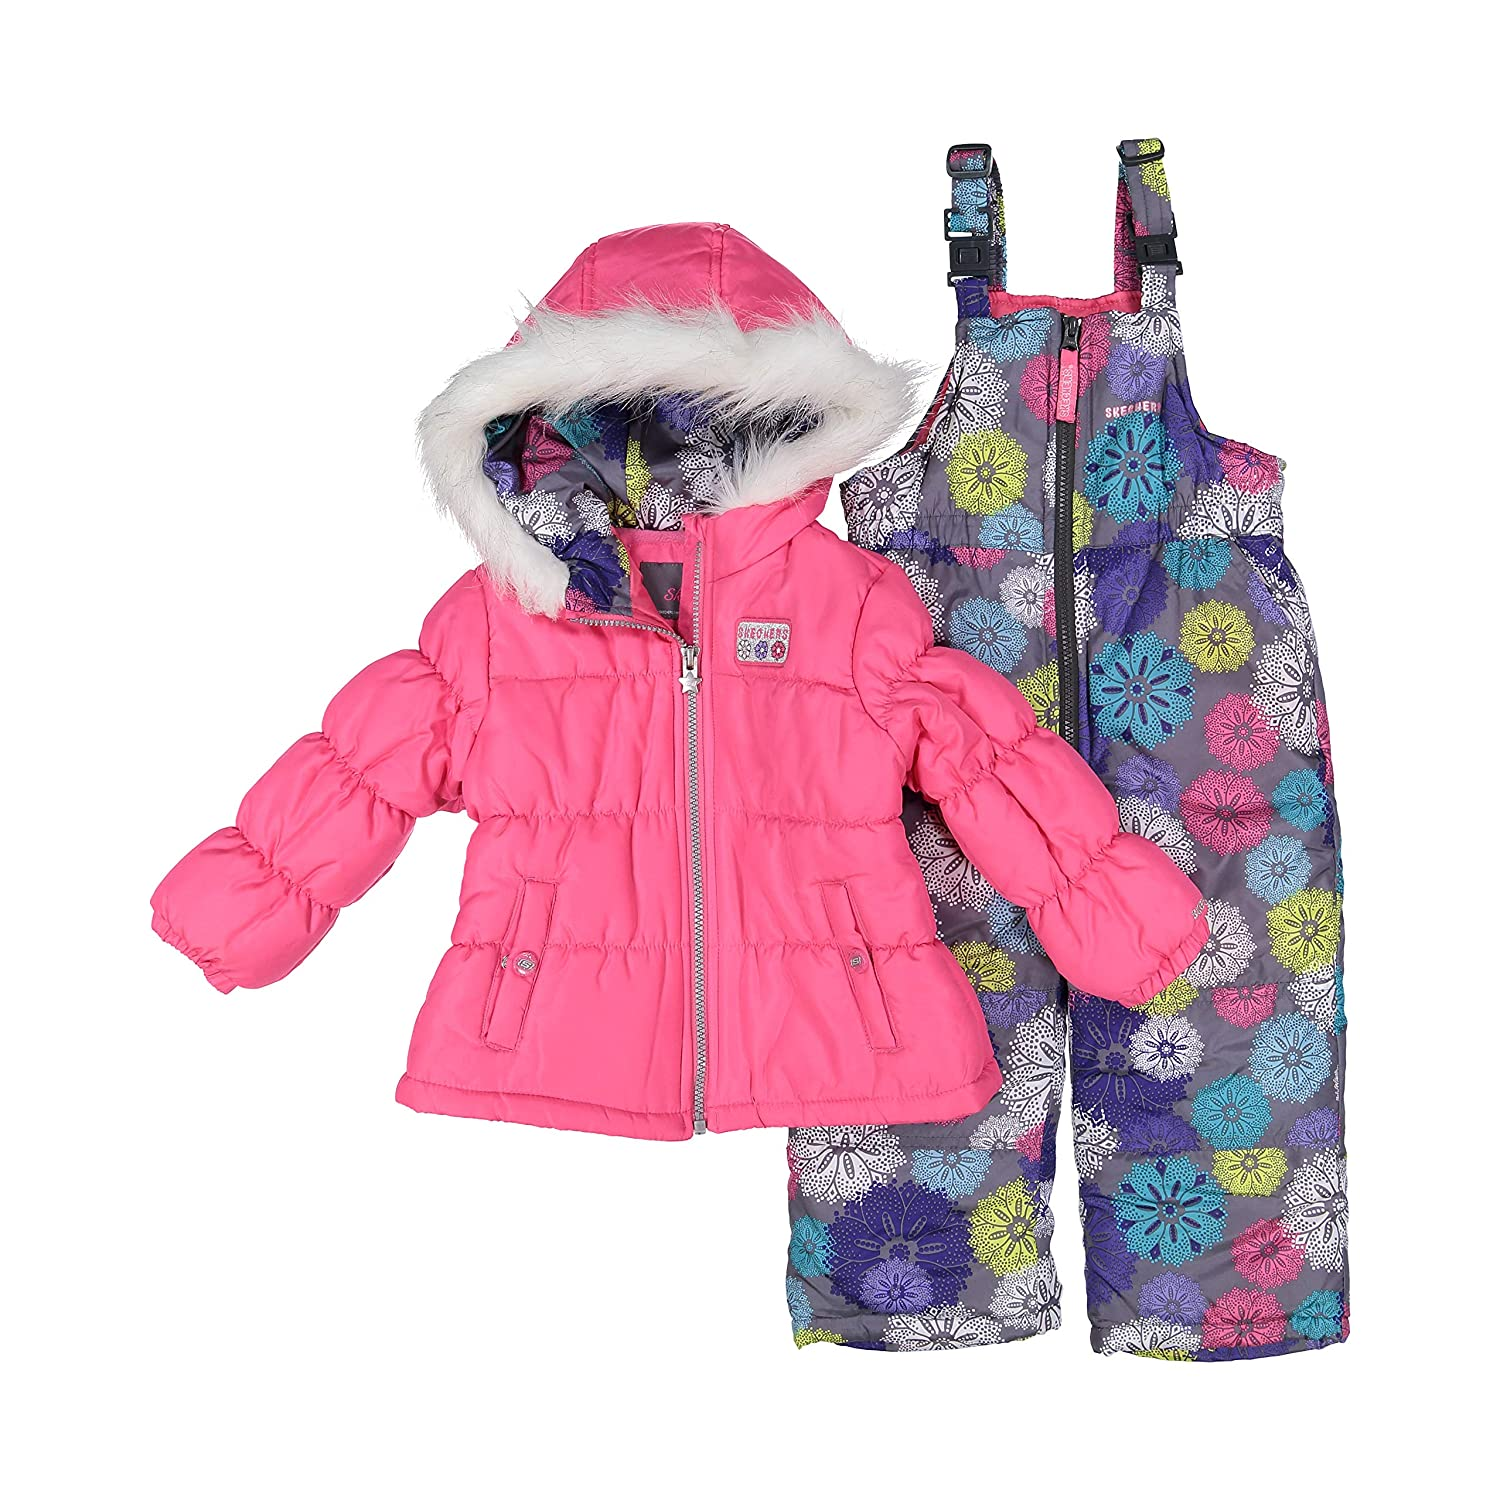 ccb85f95a333 Amazon.com  Skechers Girl s 2-Piece Insulated Puffer Bib Snowsuit ...